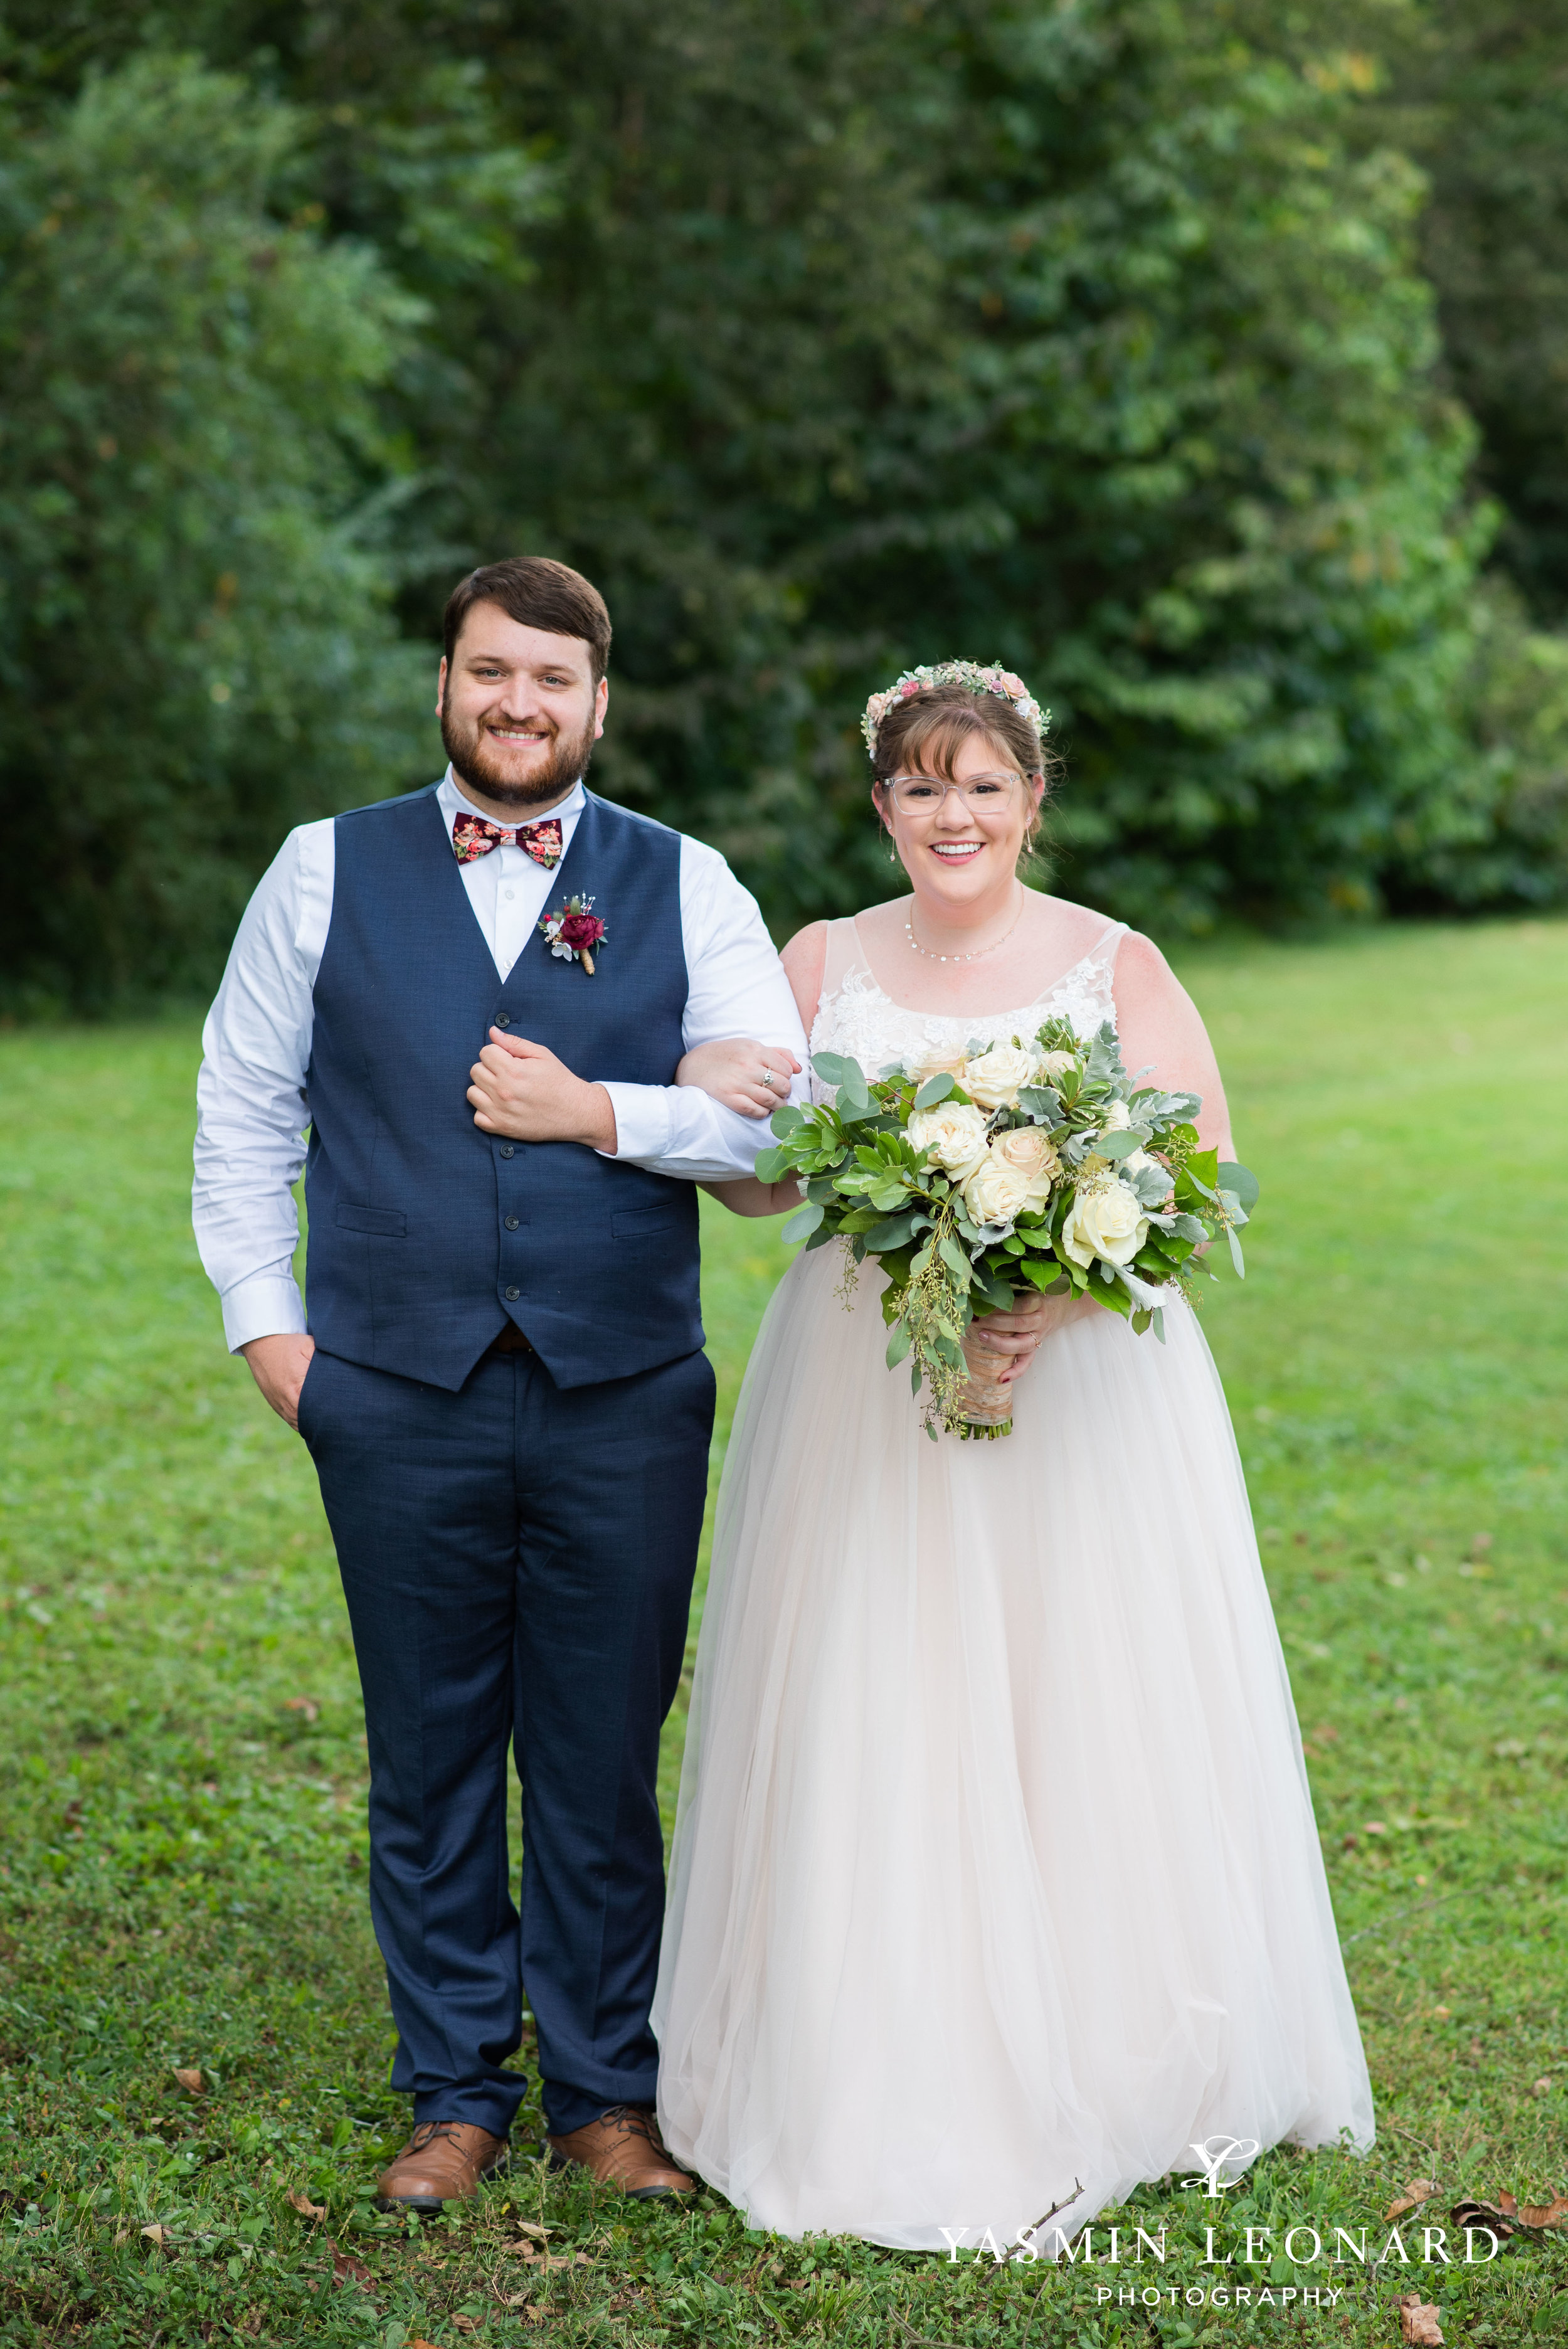 Hannah and David - l'abri at Linwood - NC Barn Weddings - Guys and Girls on Bride's Side - How to incorporate guys with bridesmaids - navy fall wedding - high point photographer - nc wedding venues - triad weddings-14.jpg